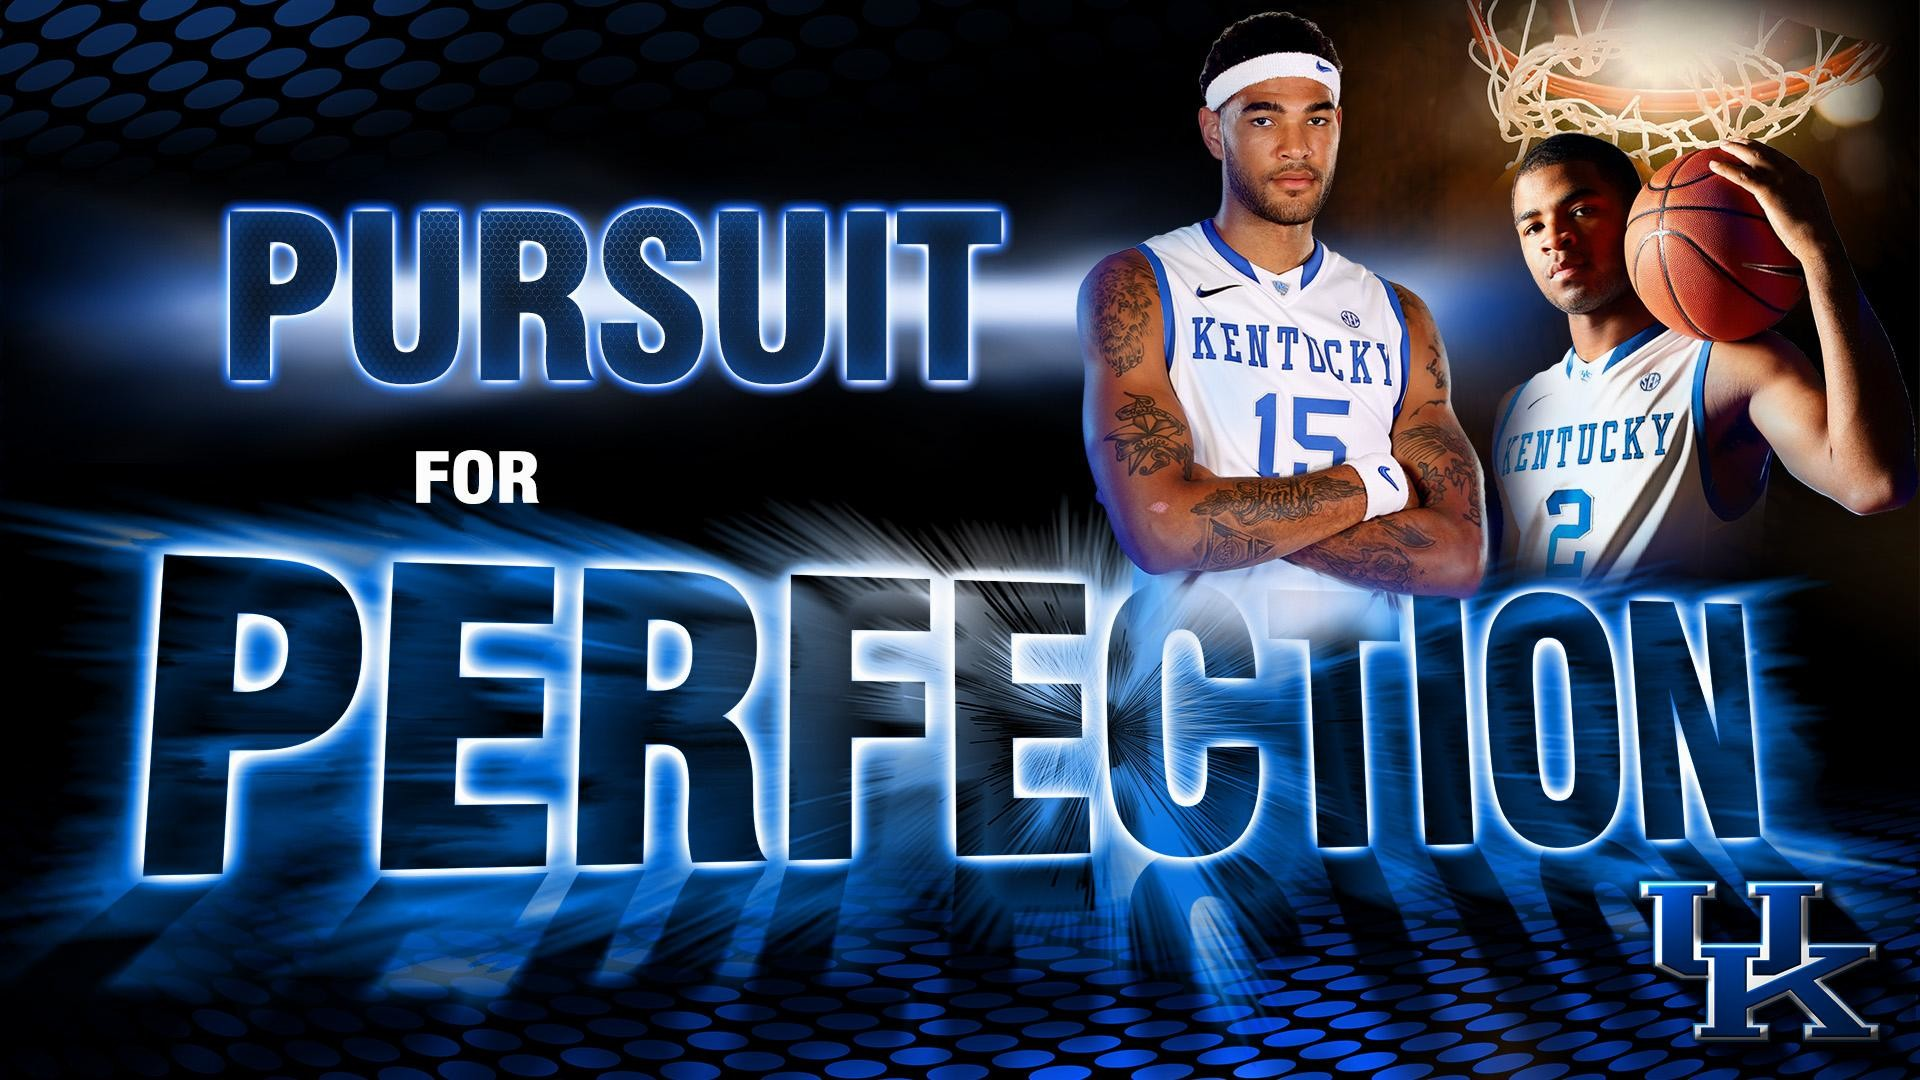 1920x1080 wallpaper wiki awesome kentucky wildcats background pic wpd003162